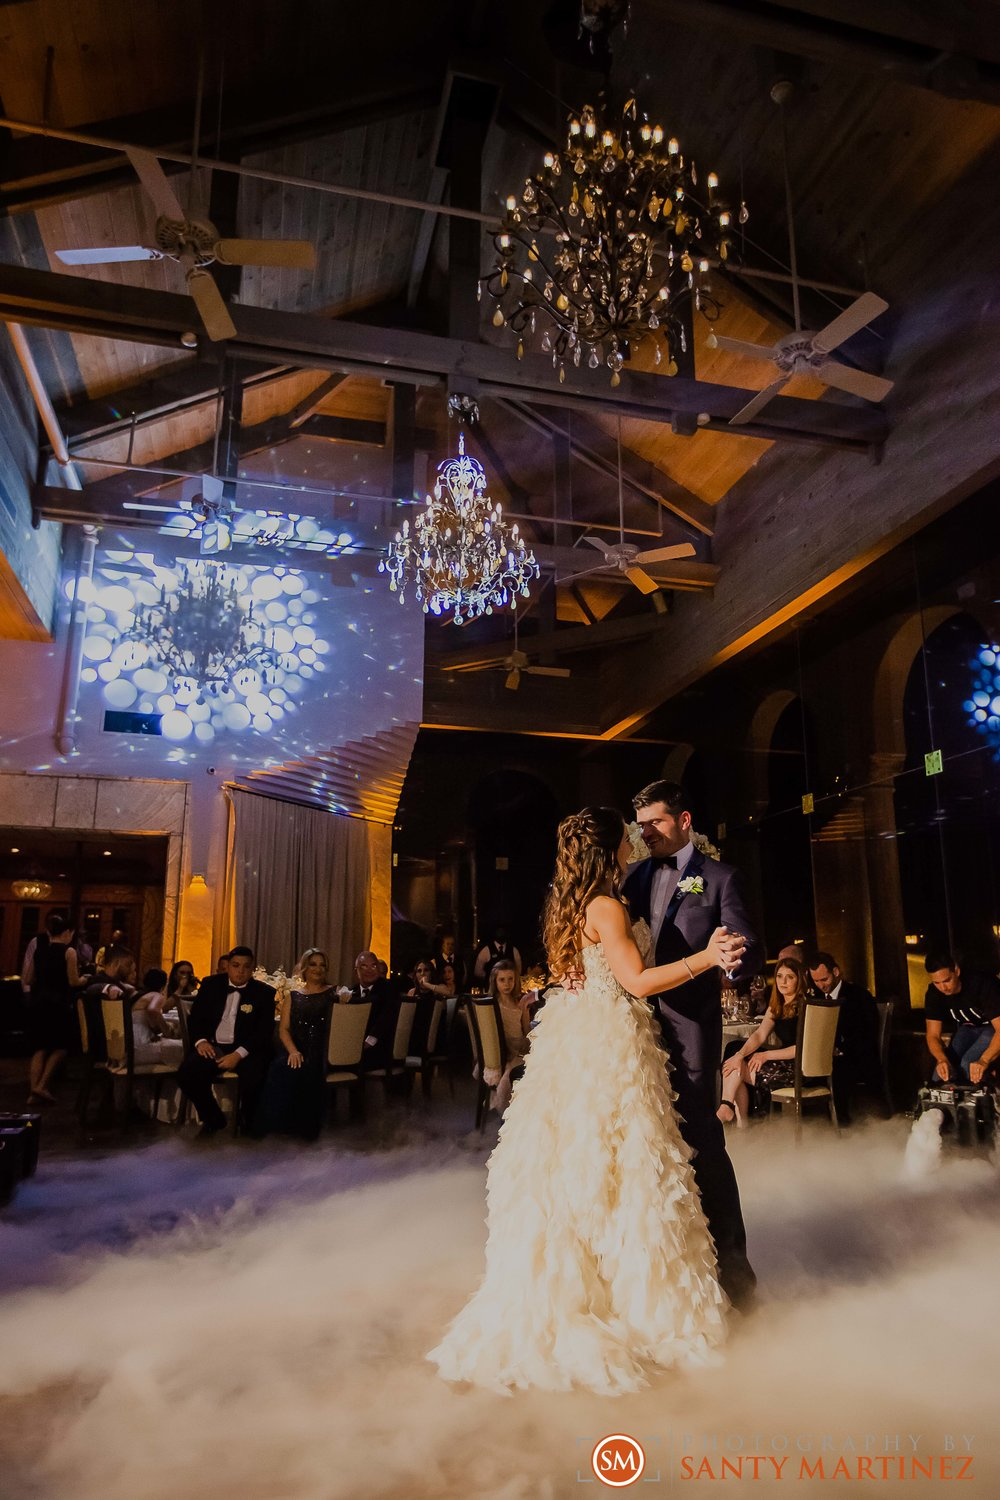 Wedding Coral Gables Country Club - Santy Martinez Photography-39.jpg